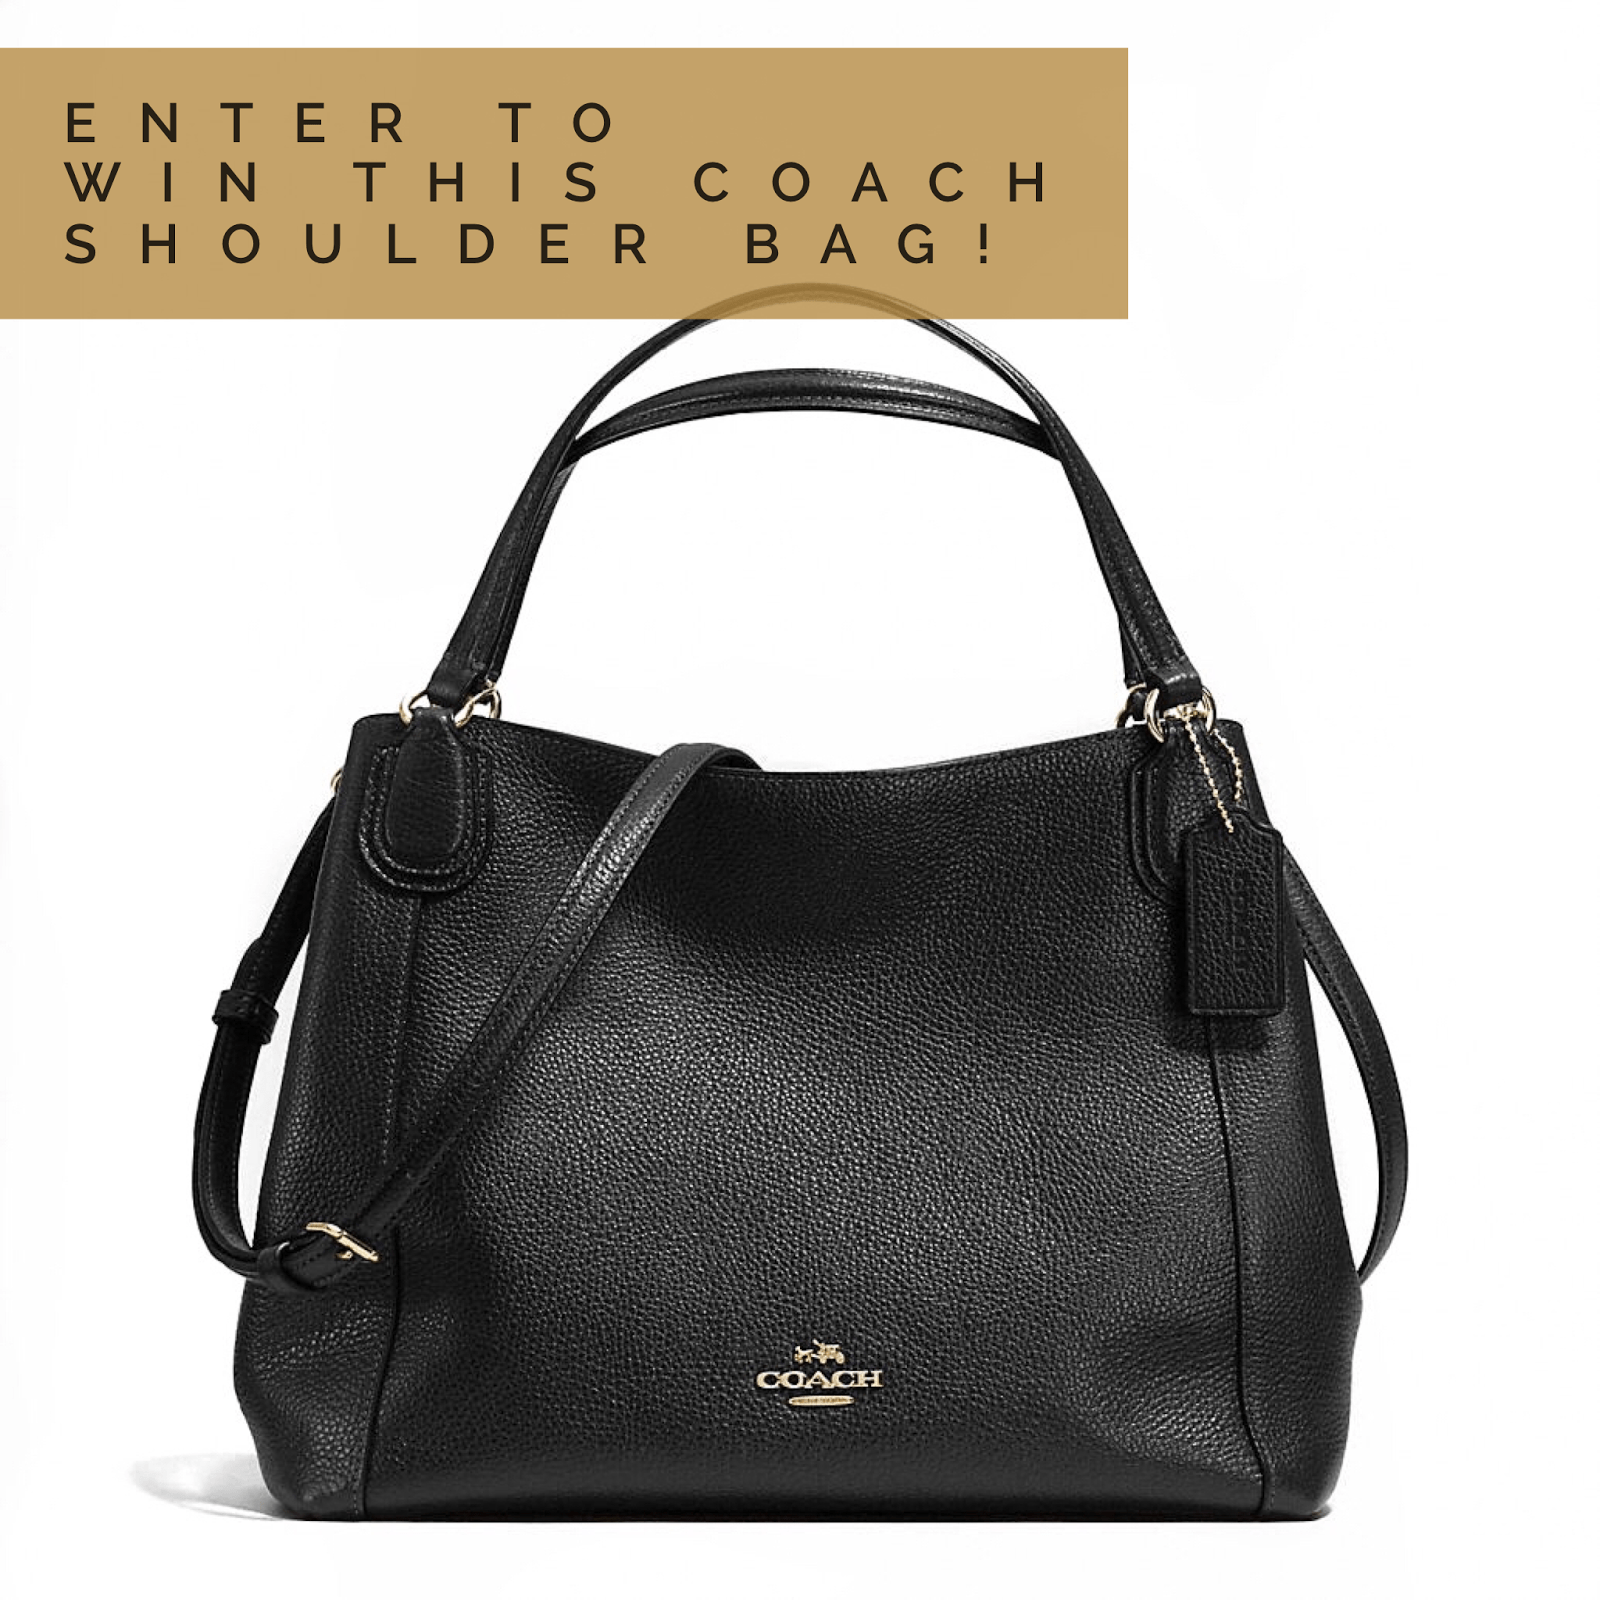 Coach Shoulder Bag GIVEAWAY!